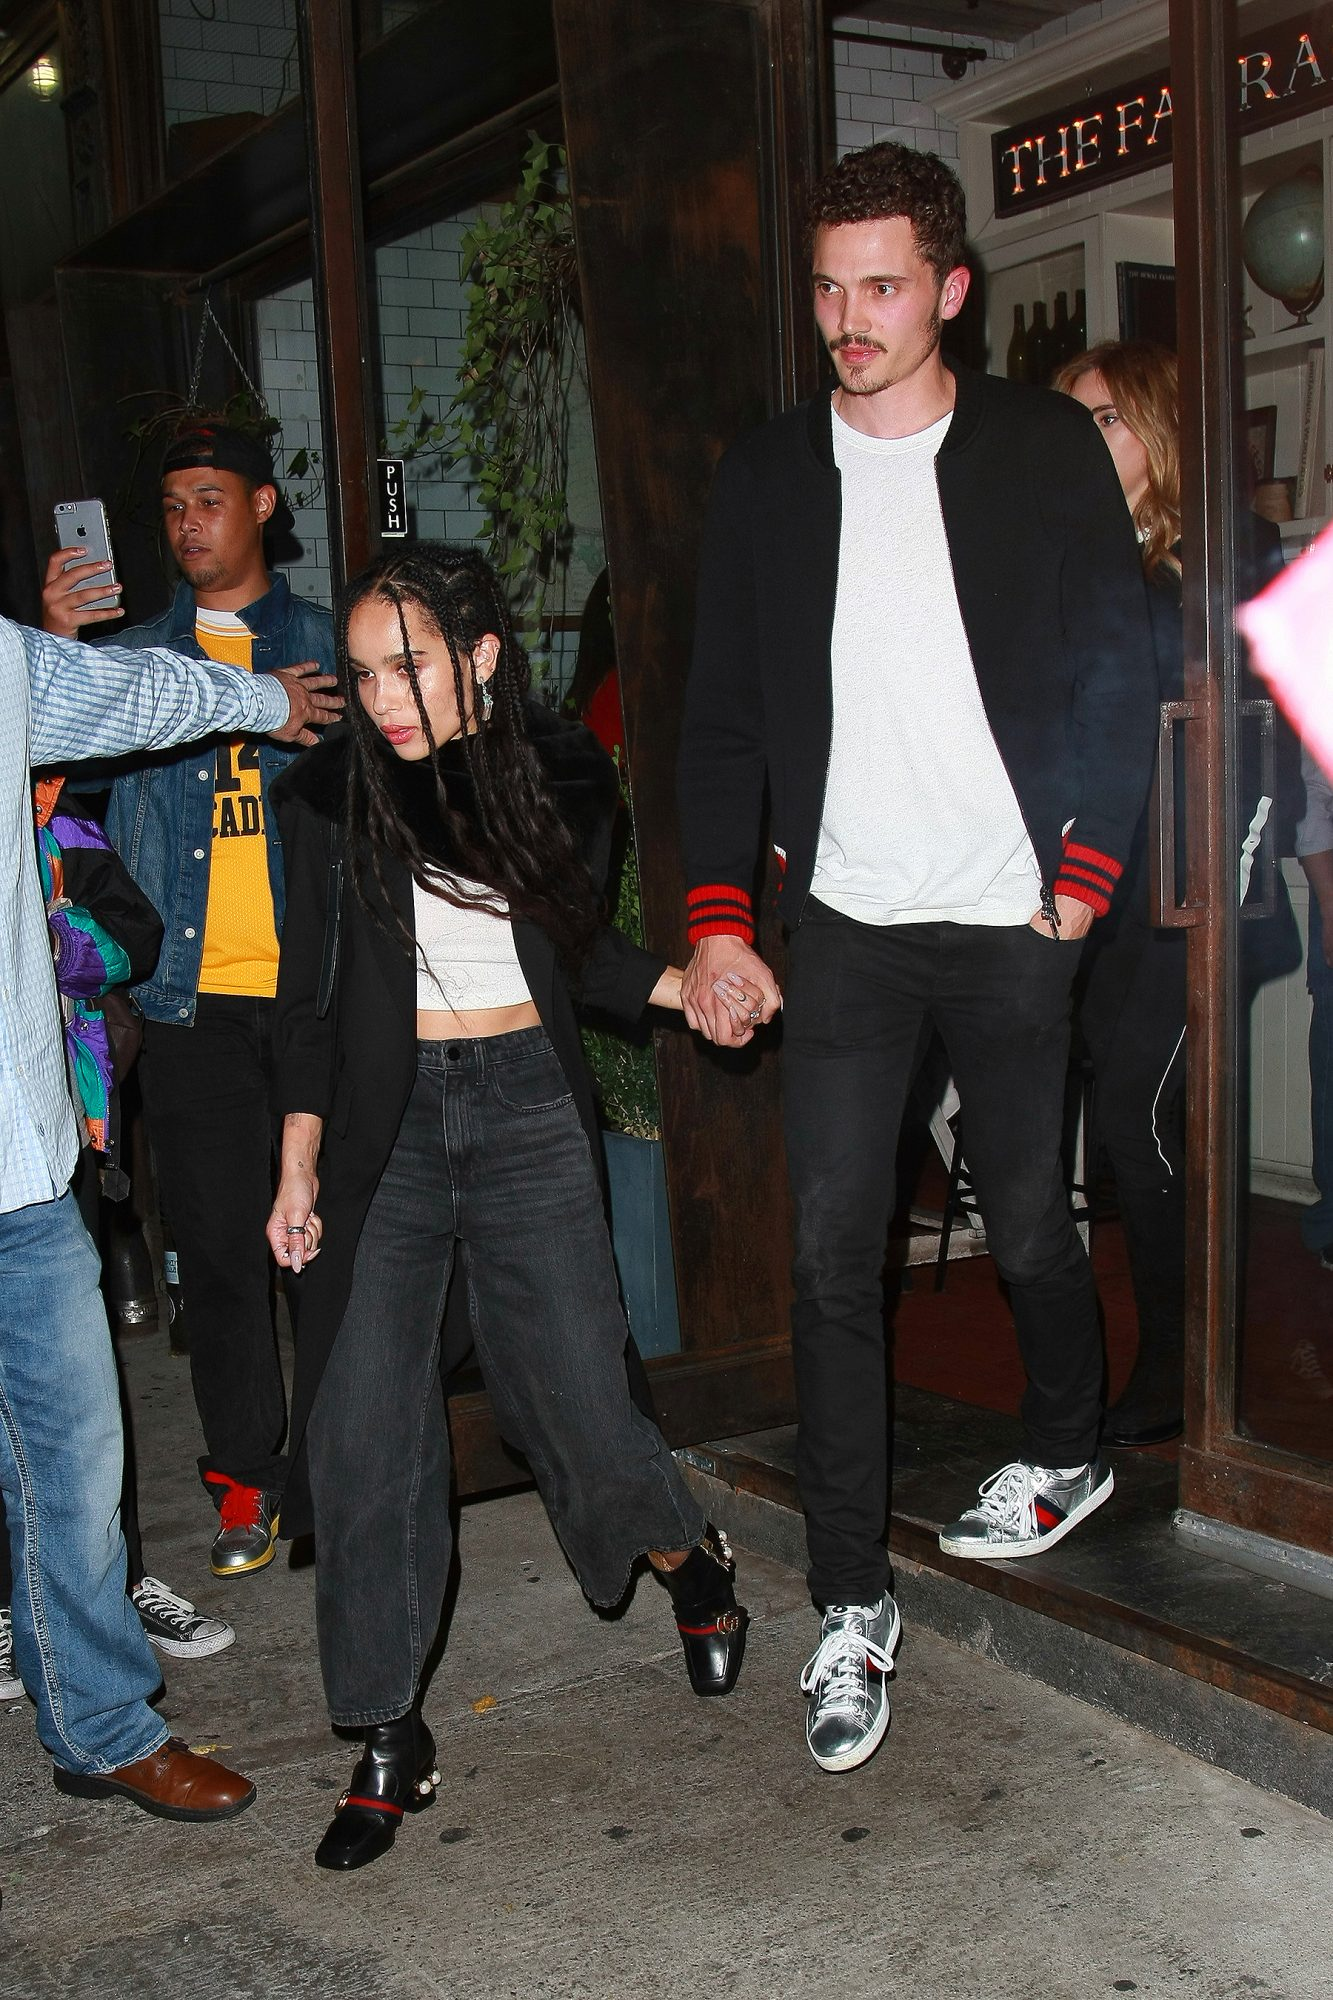 Zoe Kravitz walks hand-in-hand with 'Love' actor Karl Glusman - DO NOT SYNDICATE